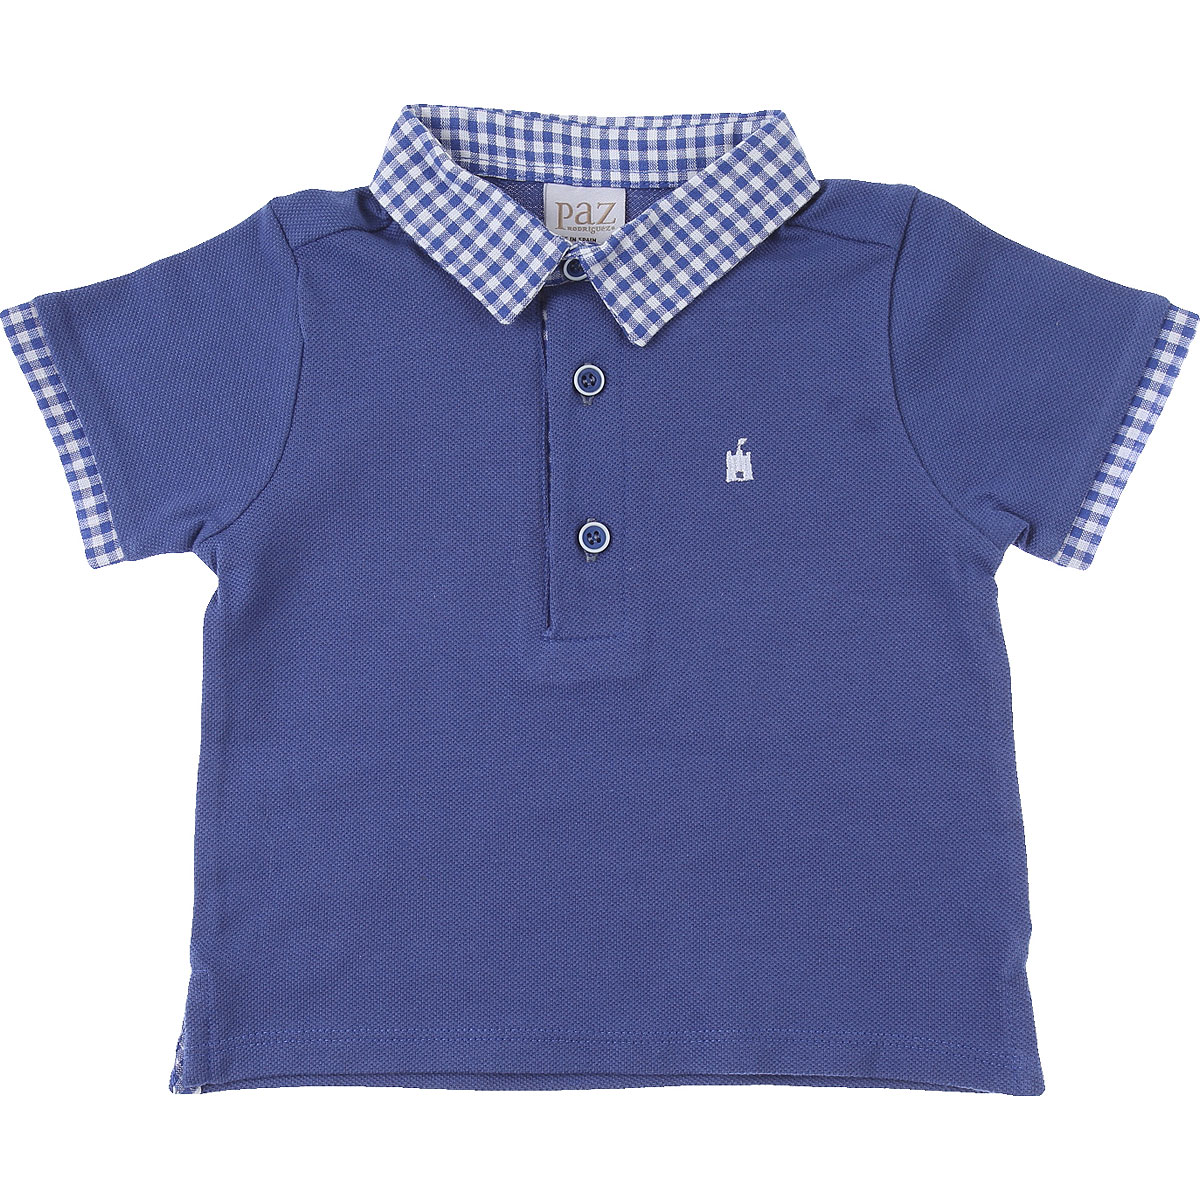 Paz Rodriguez Baby Polo Shirt for Boys On Sale, Blue, Cotton, 2019, 12 M 2Y